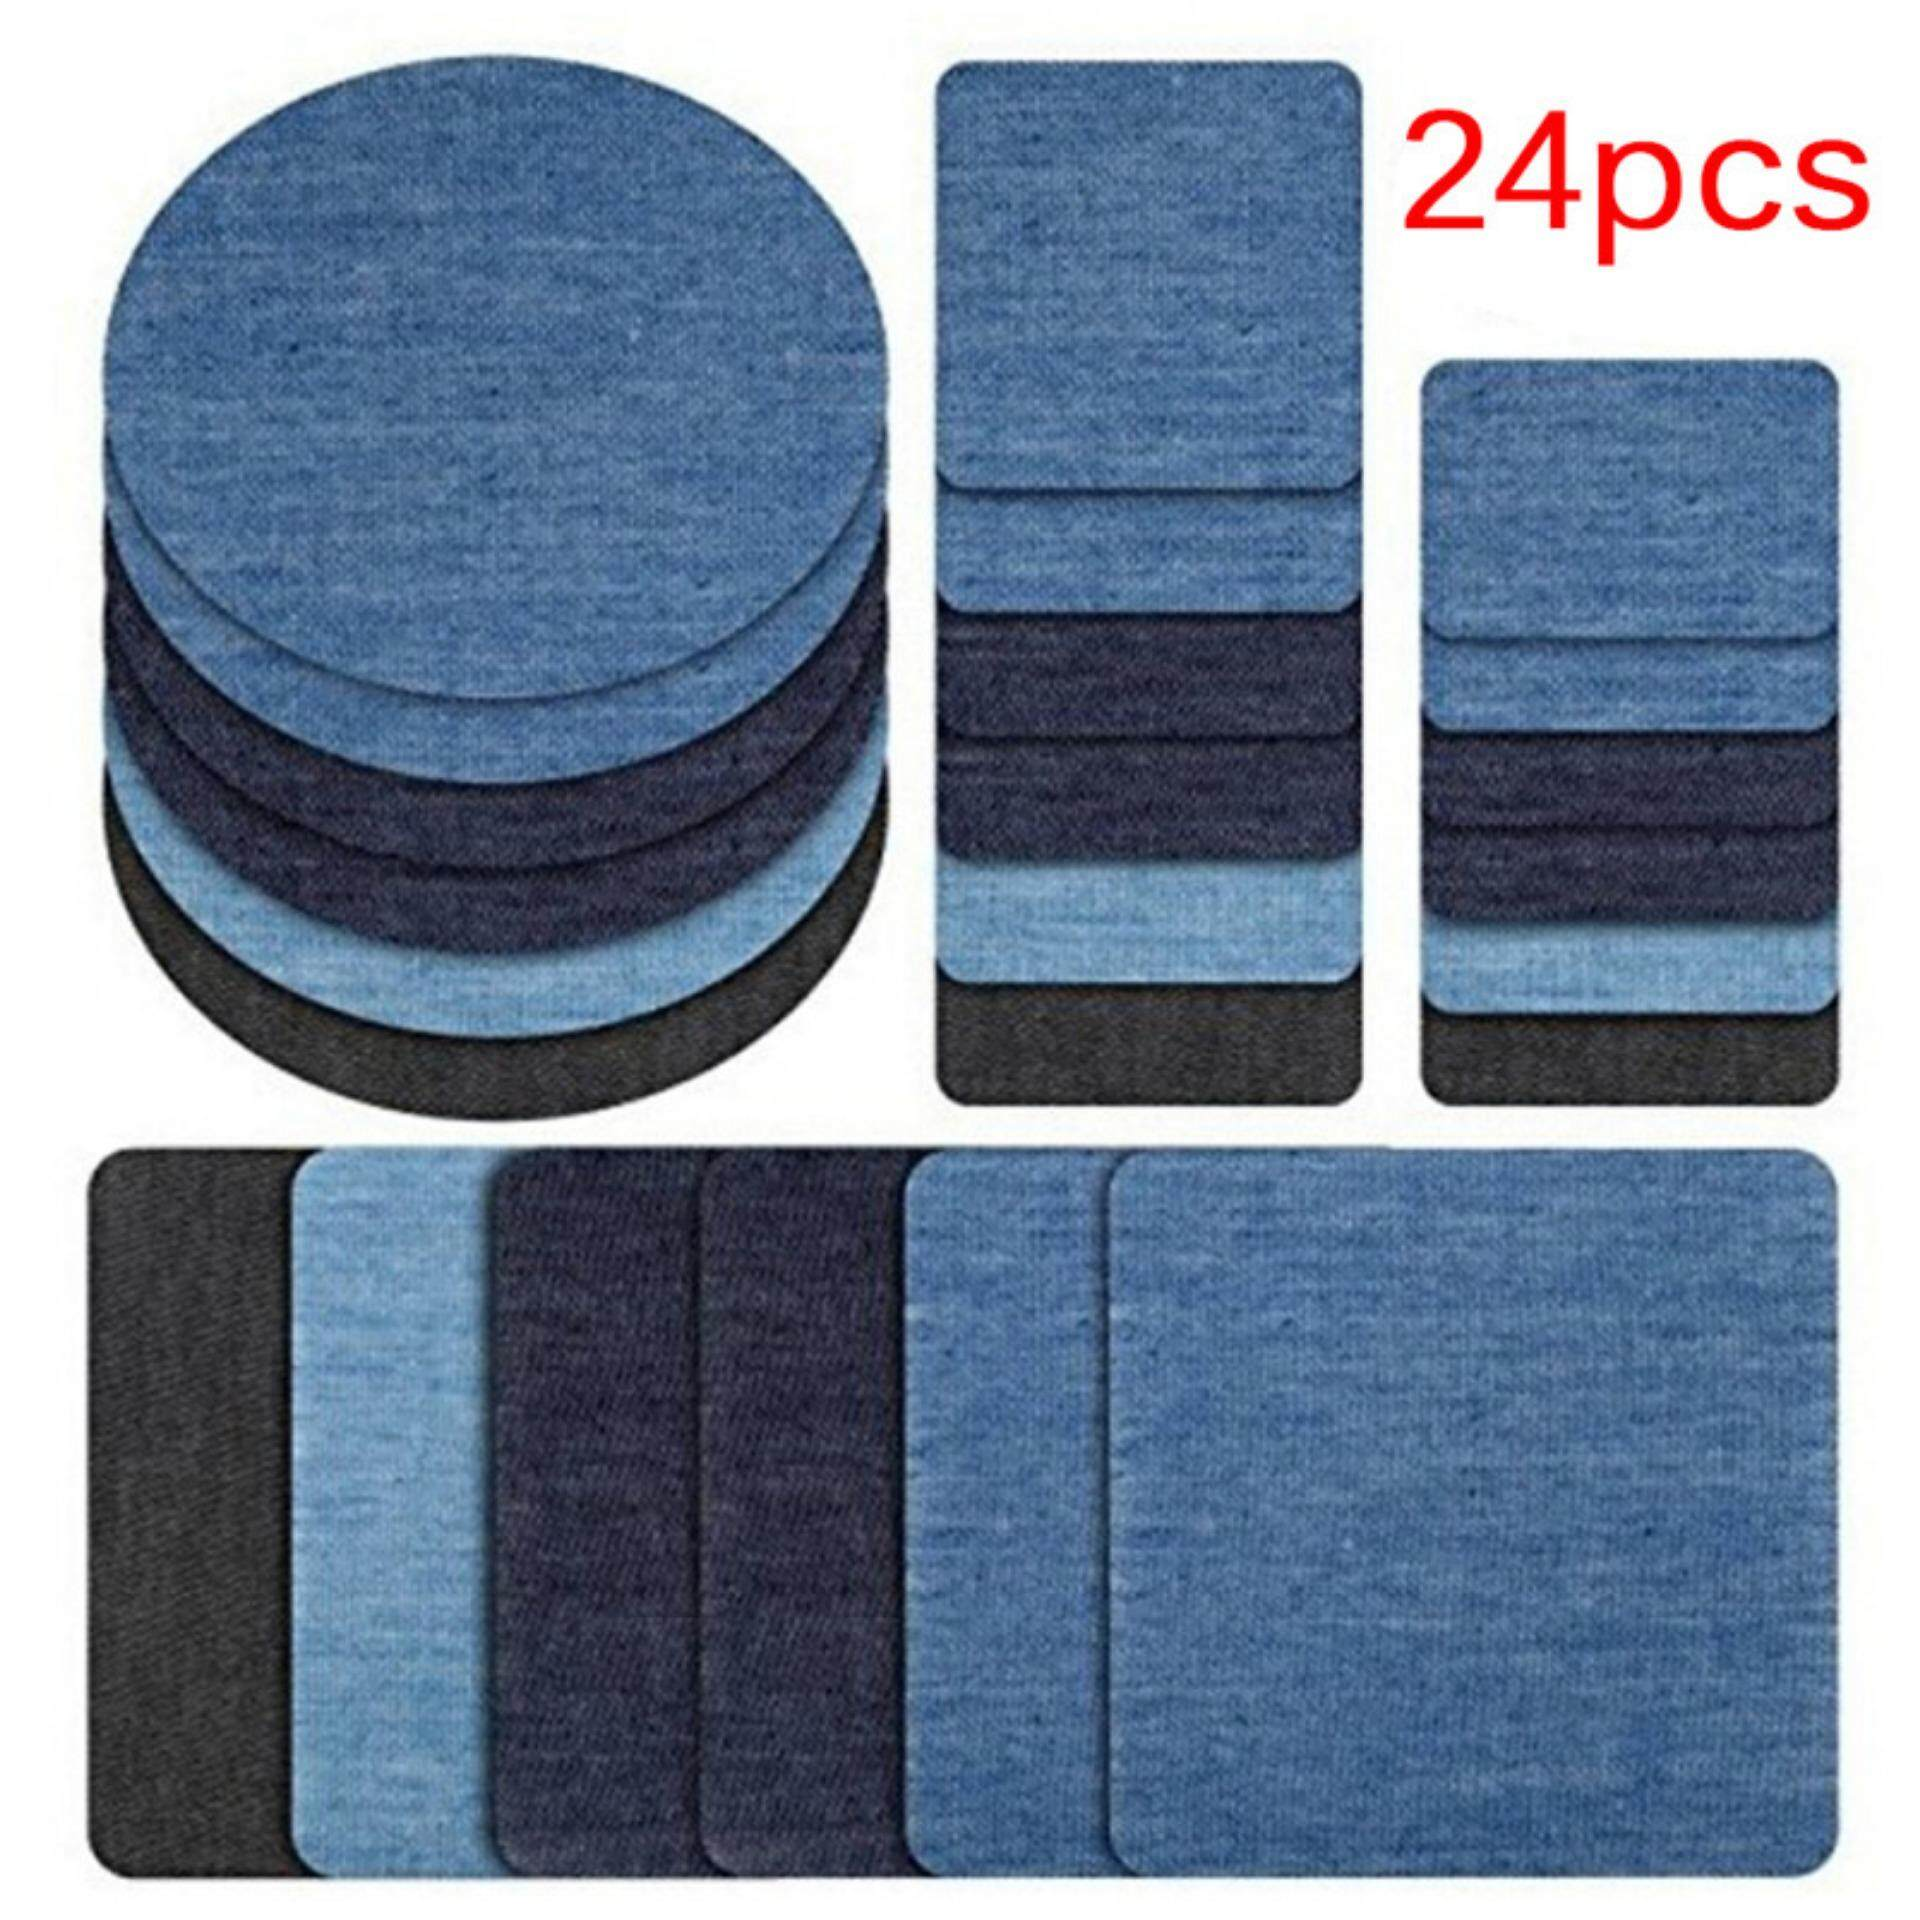 Mua 24pcs Iron On Patches Repair Elbow Knee Sew On Patches Craft DIY Accessories